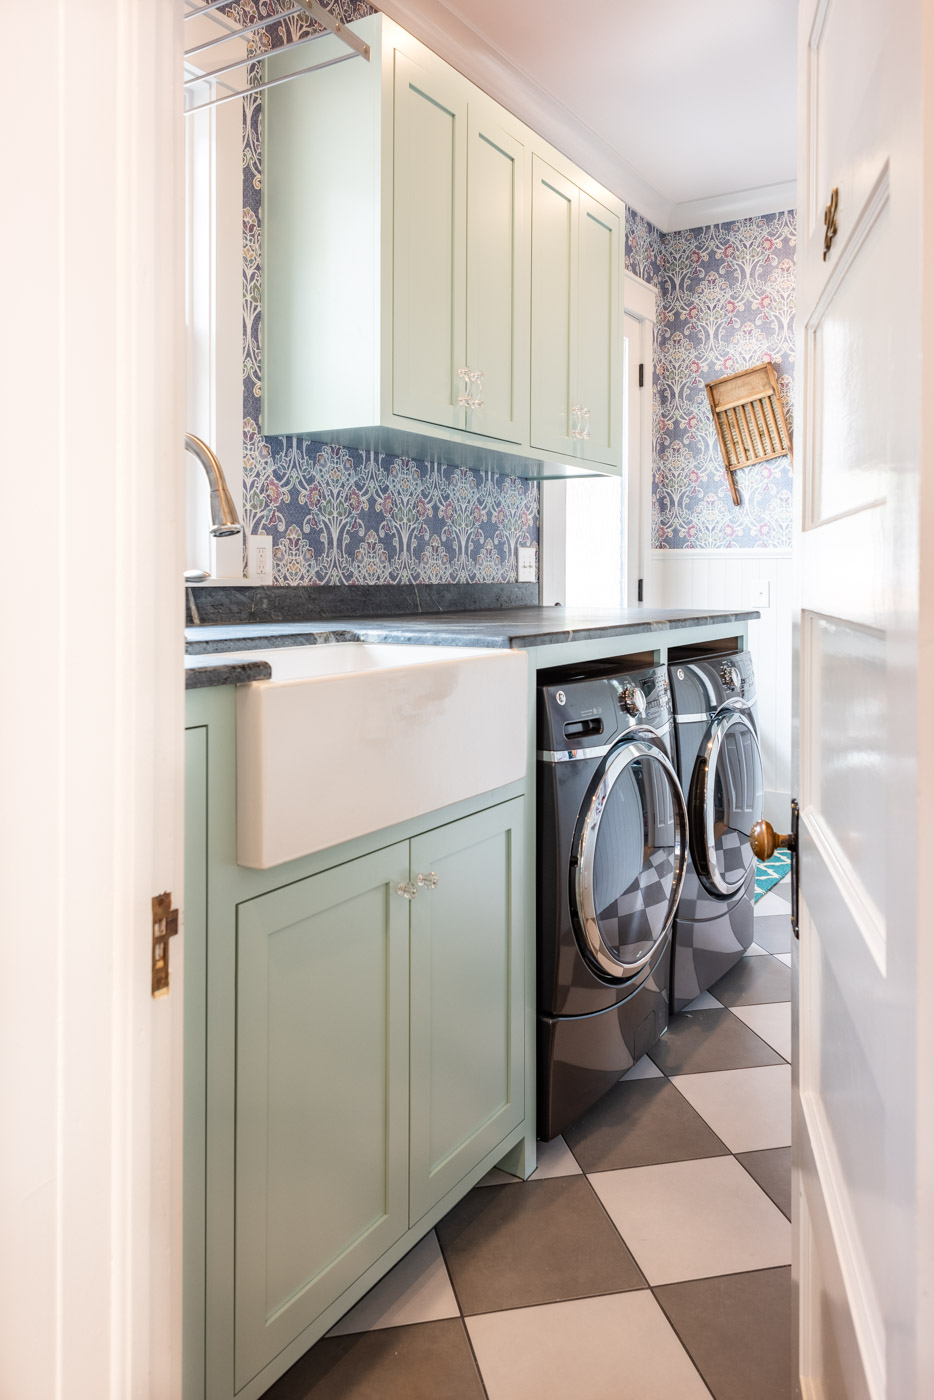 Eclectic Country Craftsman laundry room with custom blue painted cabinets and farmhouse sink